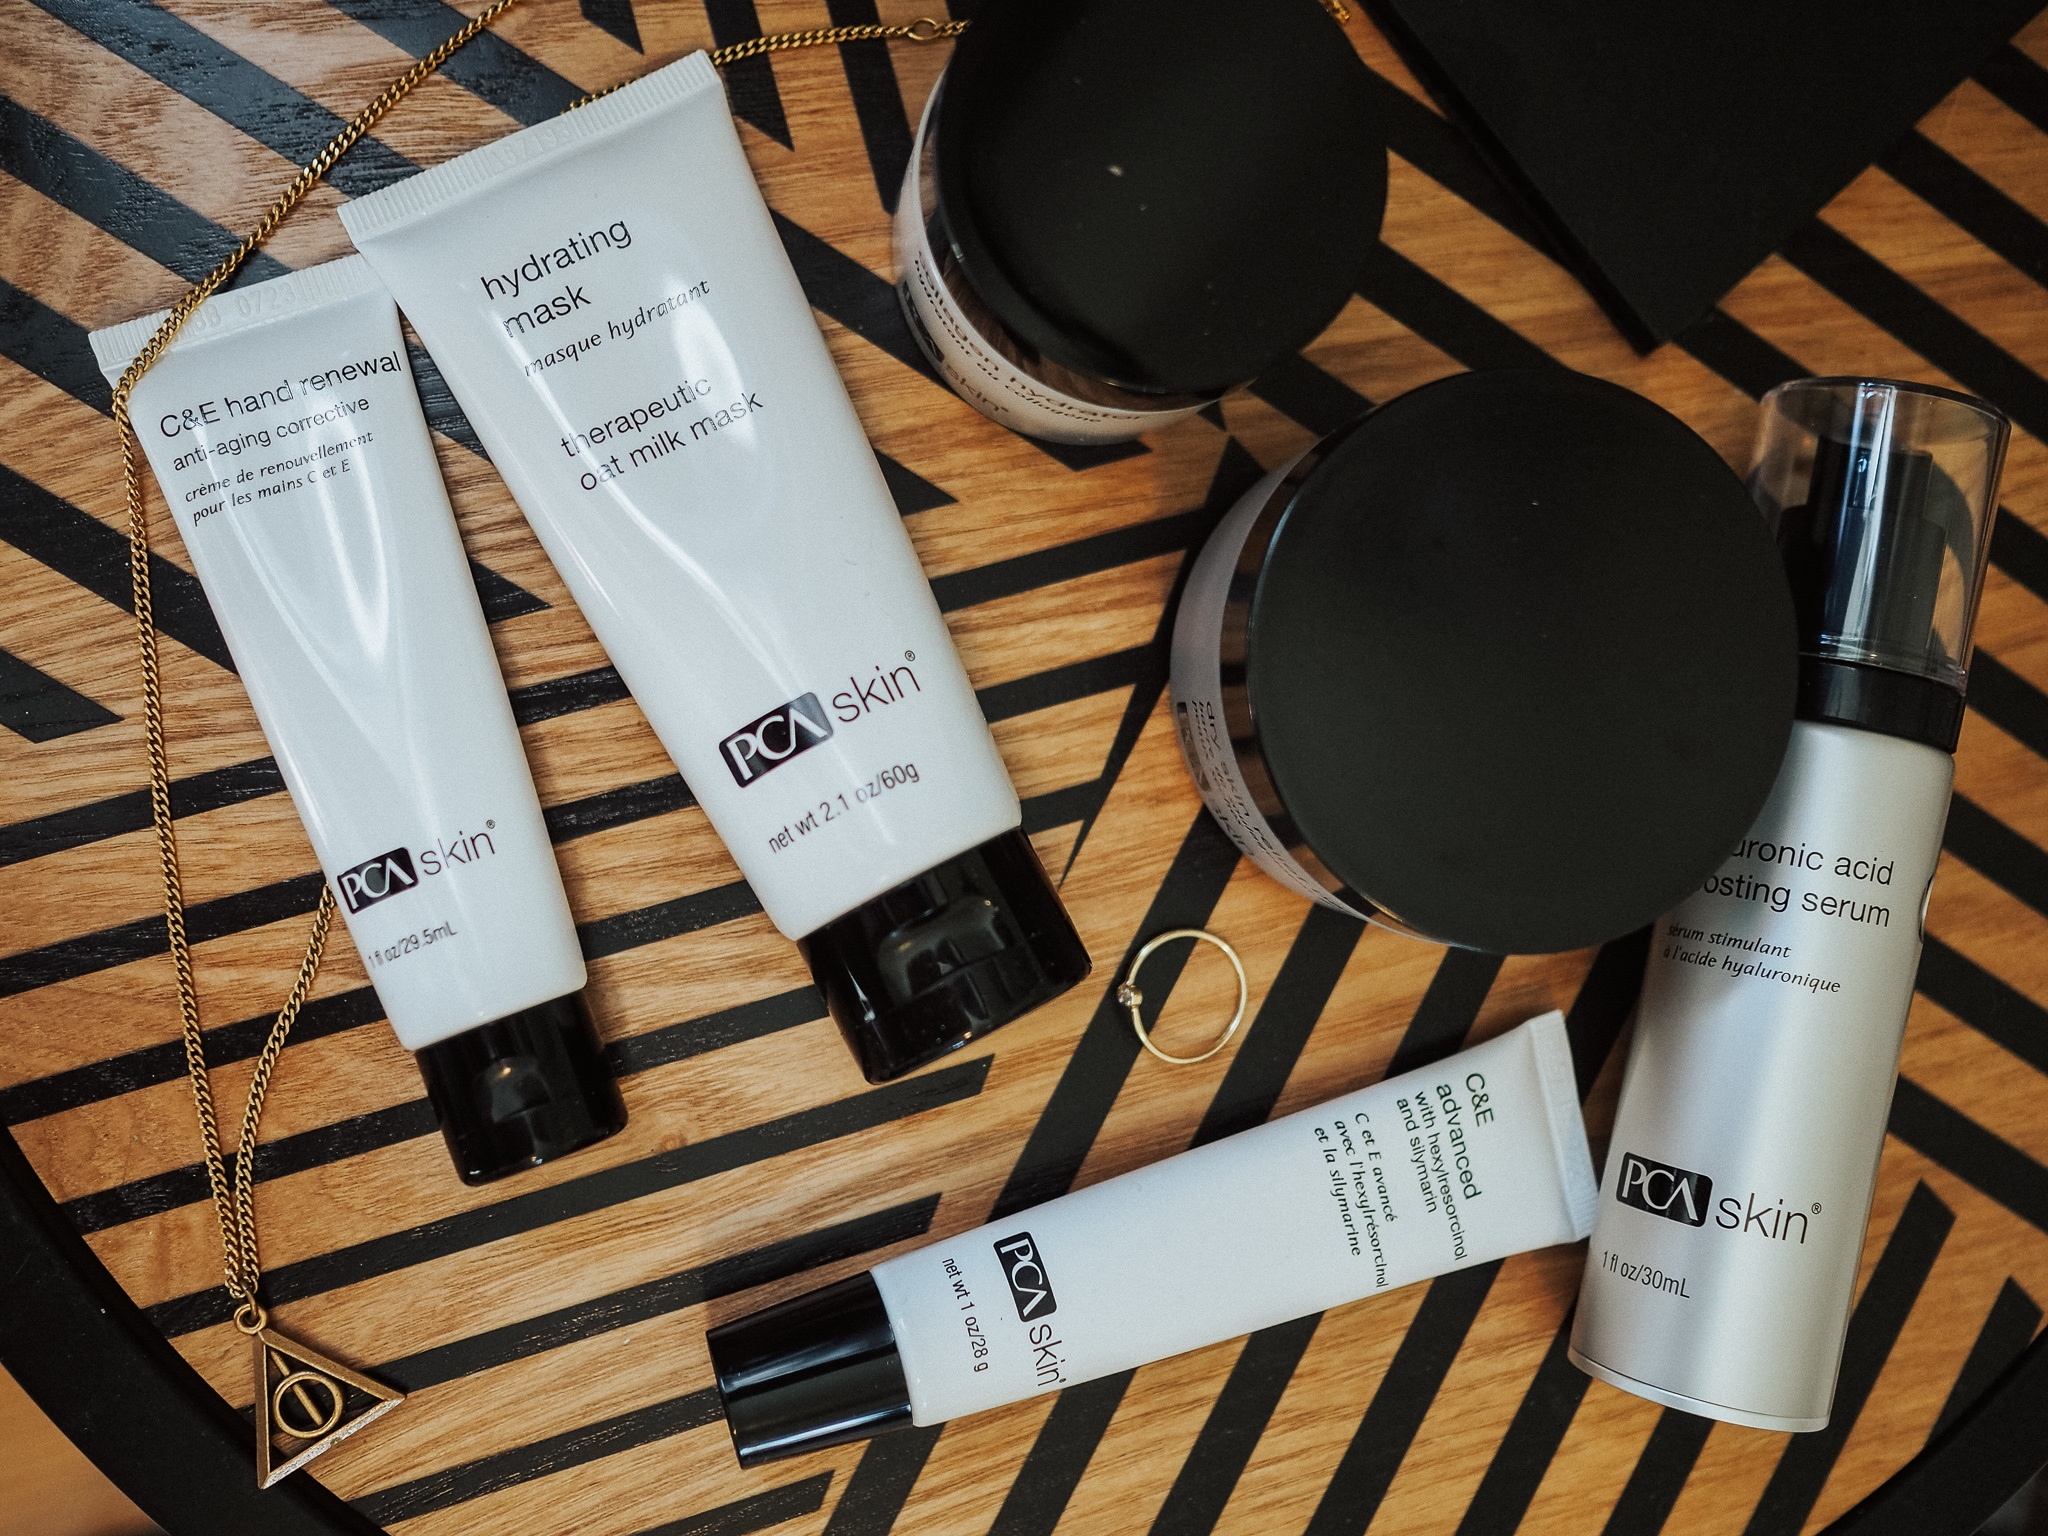 Always wanted to try PCA skin products but didn't know where to start? Find out the best PCA skin products for dry skin in this blog post.